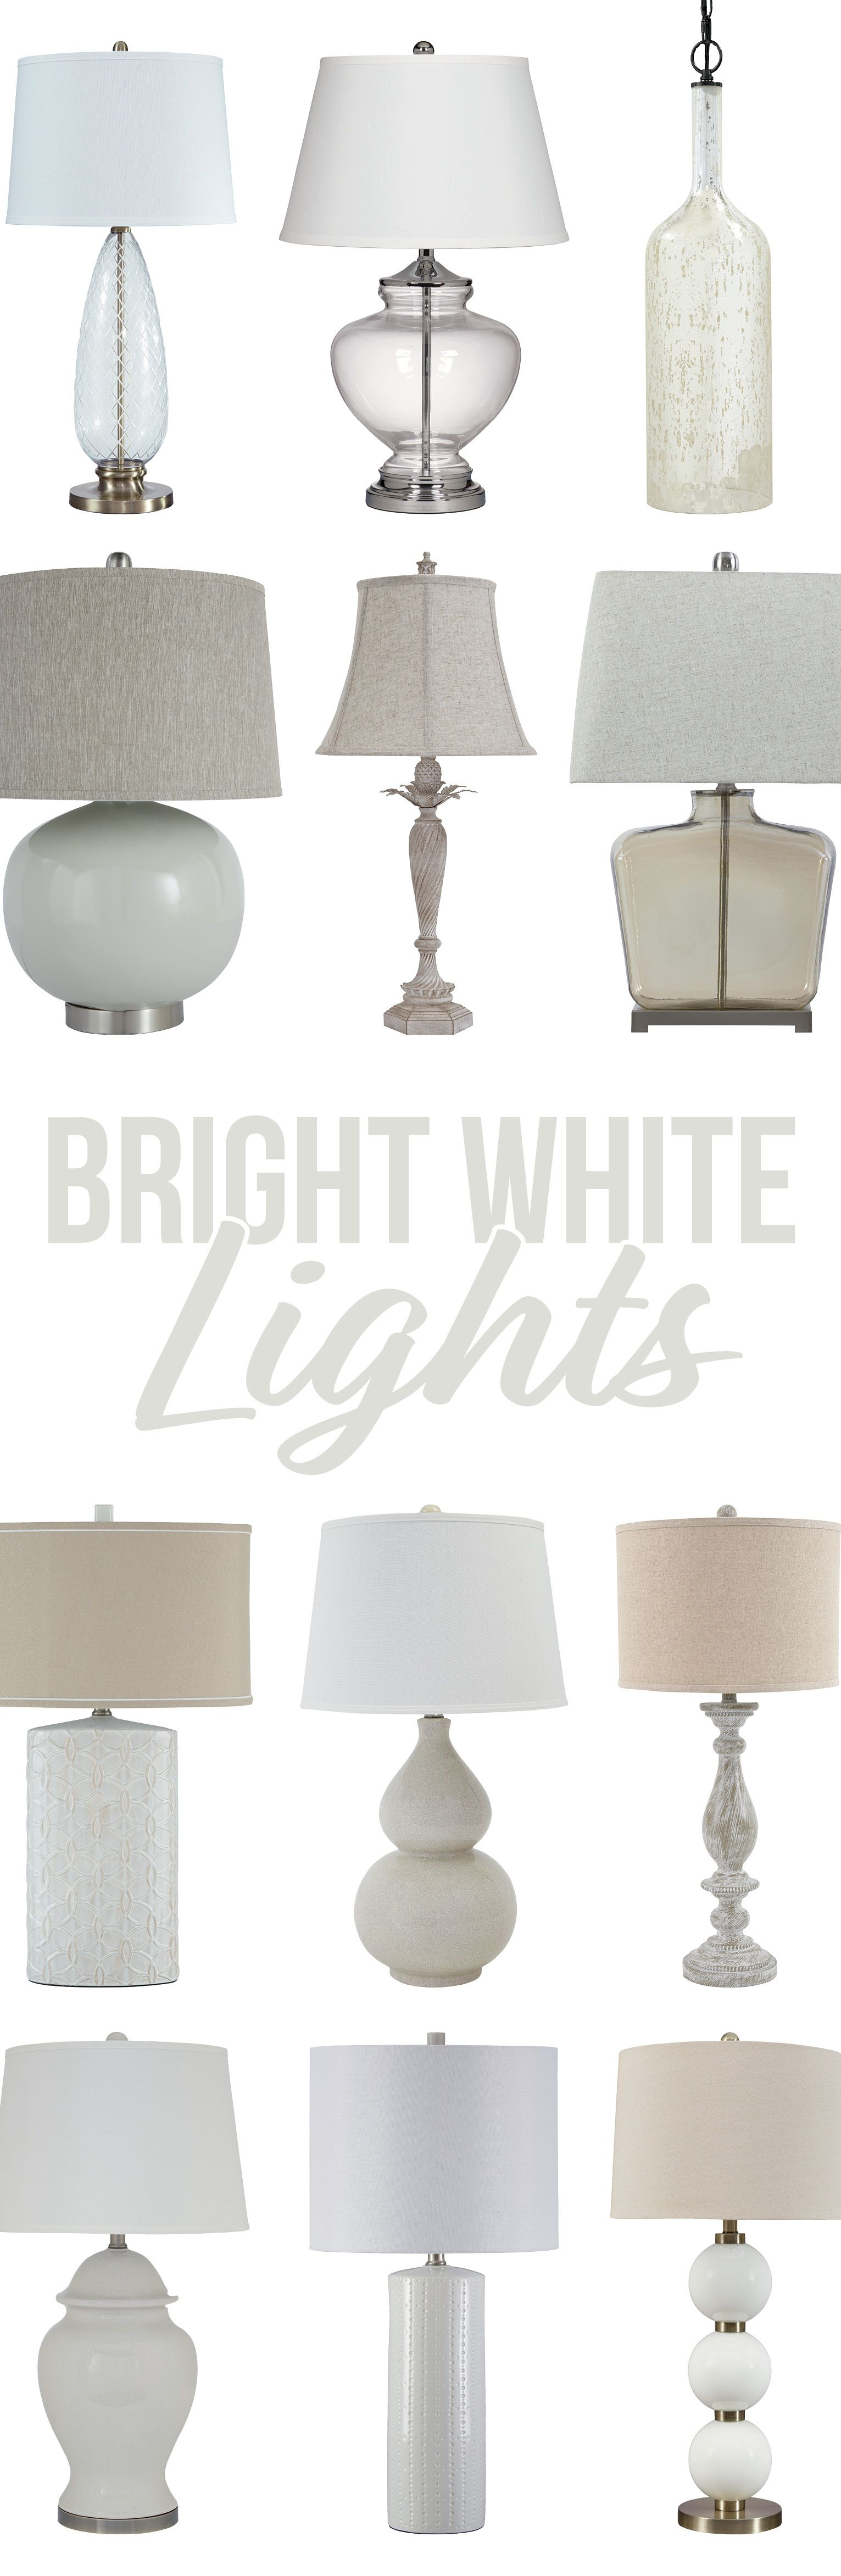 Bright White Lights To Brighten Up Your Home With Style